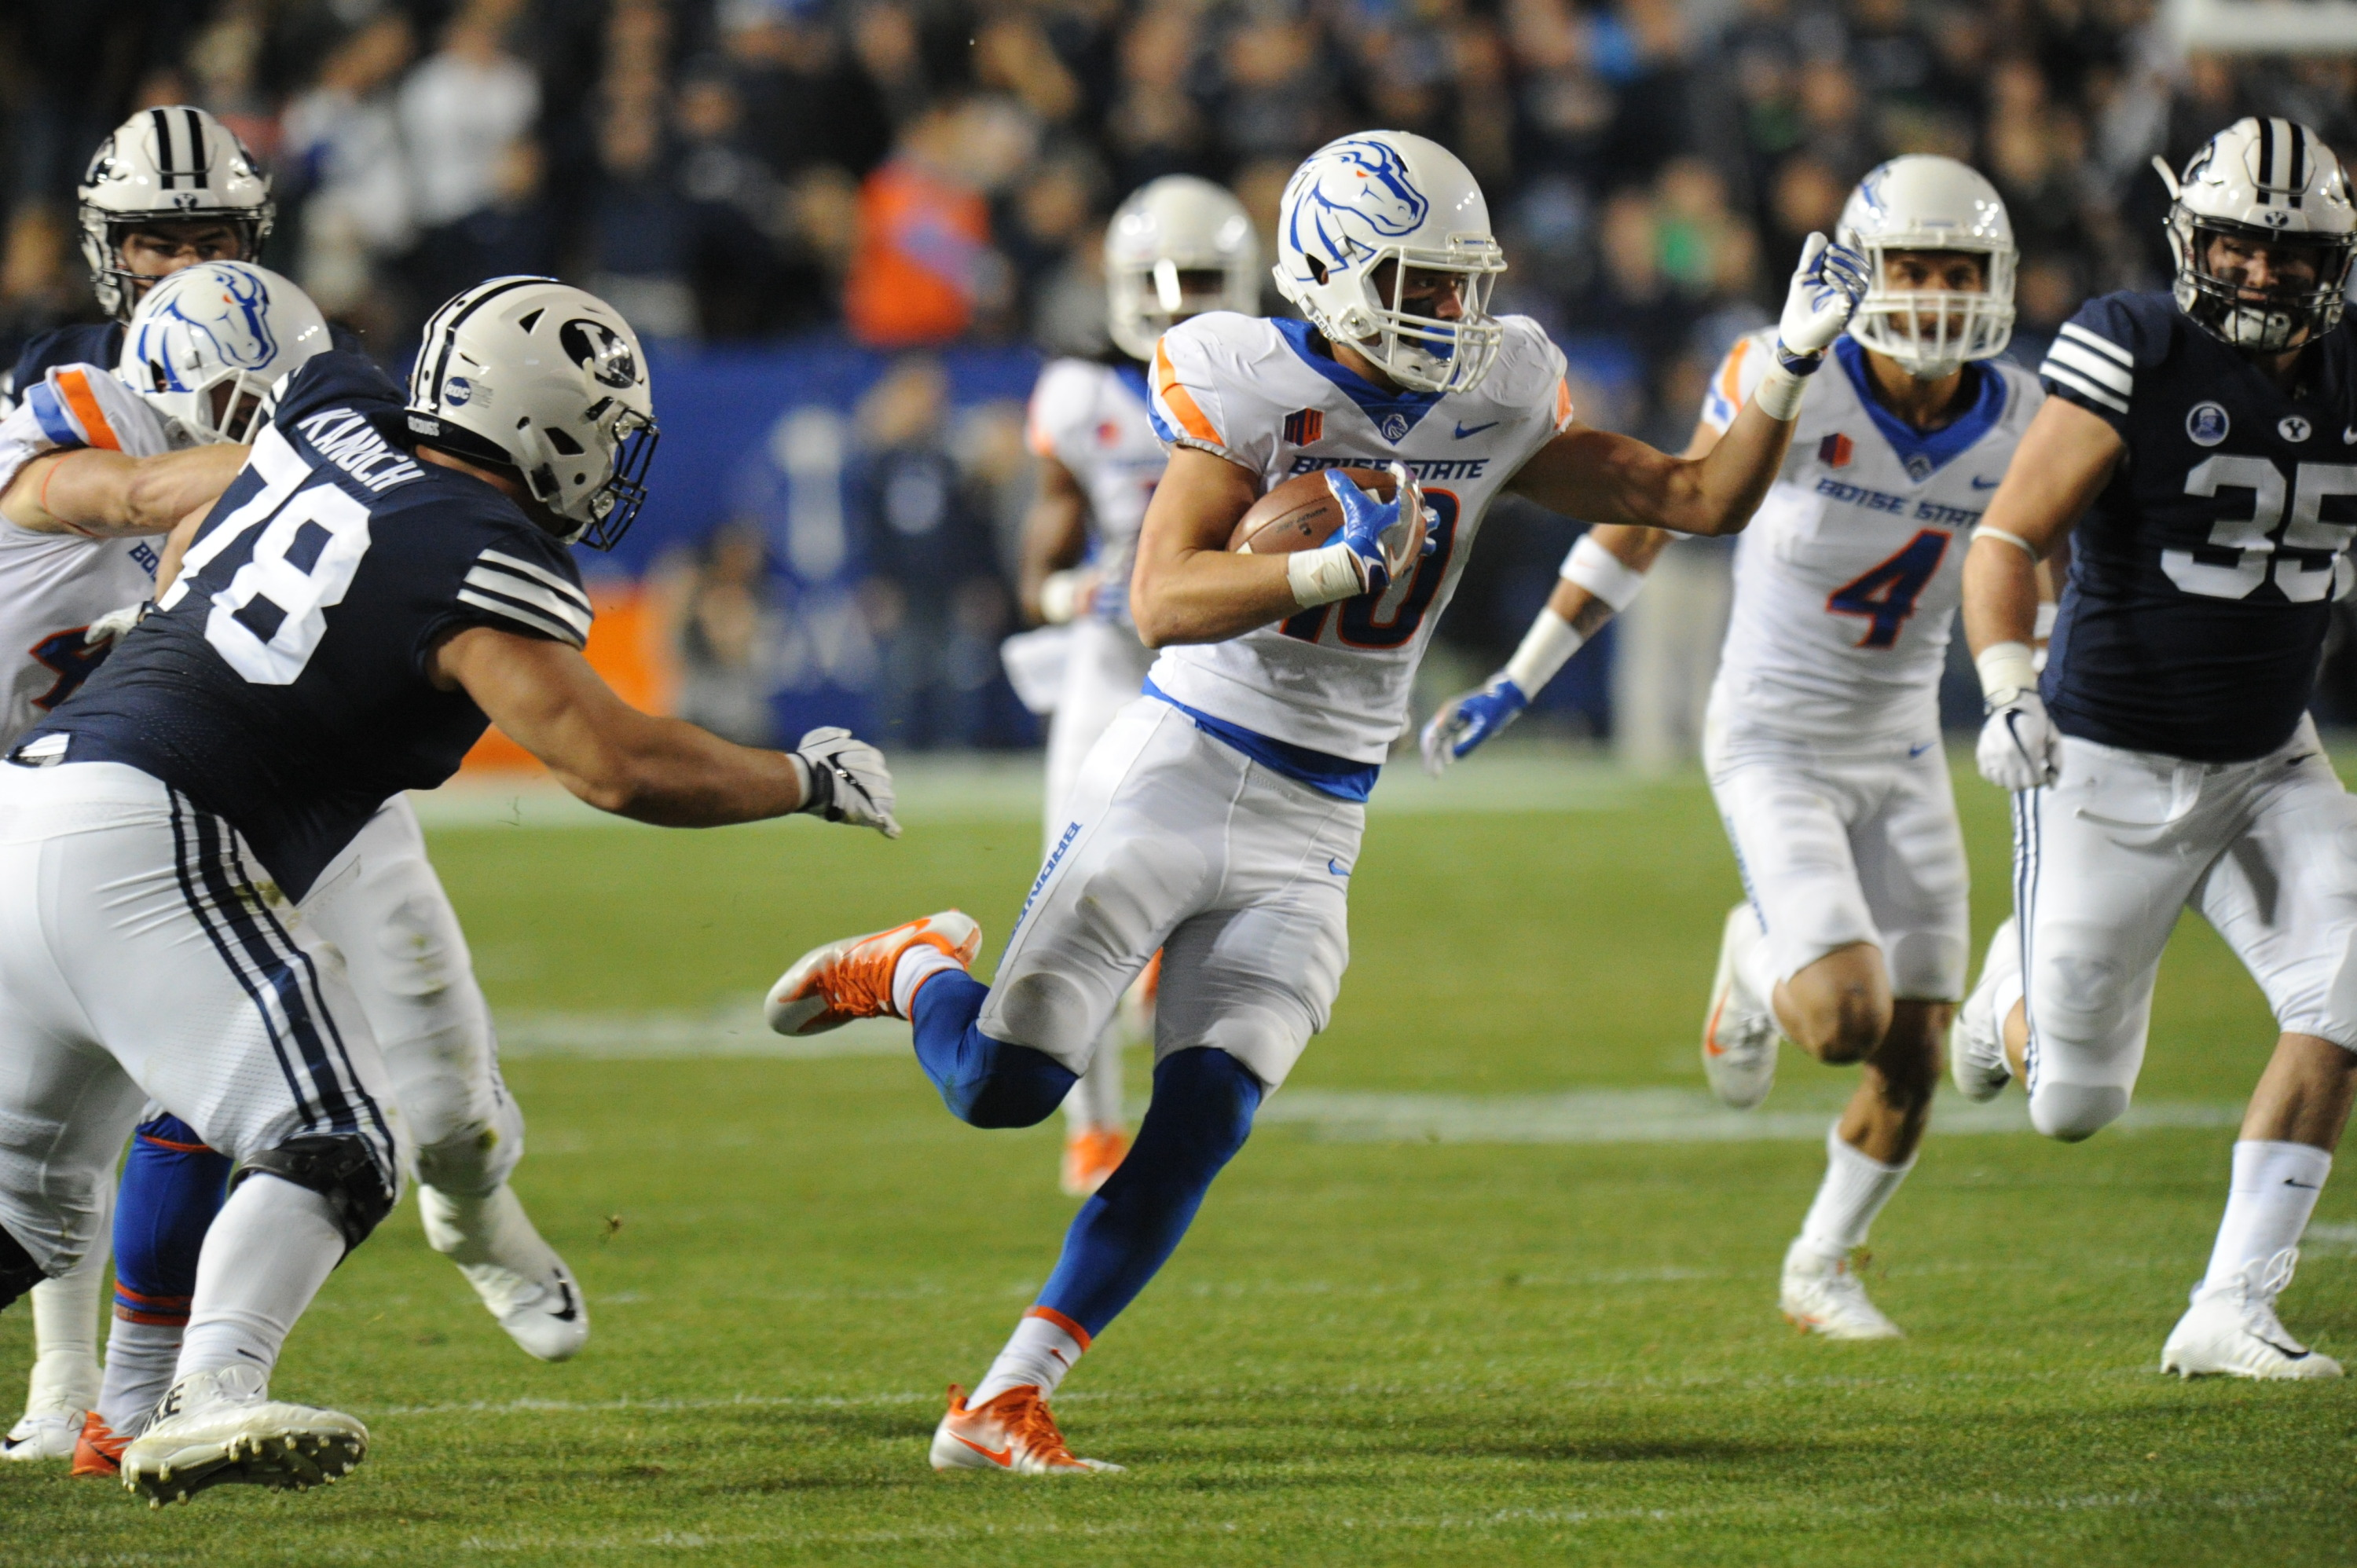 Boise State Football vs BYU, Allison Corona photo